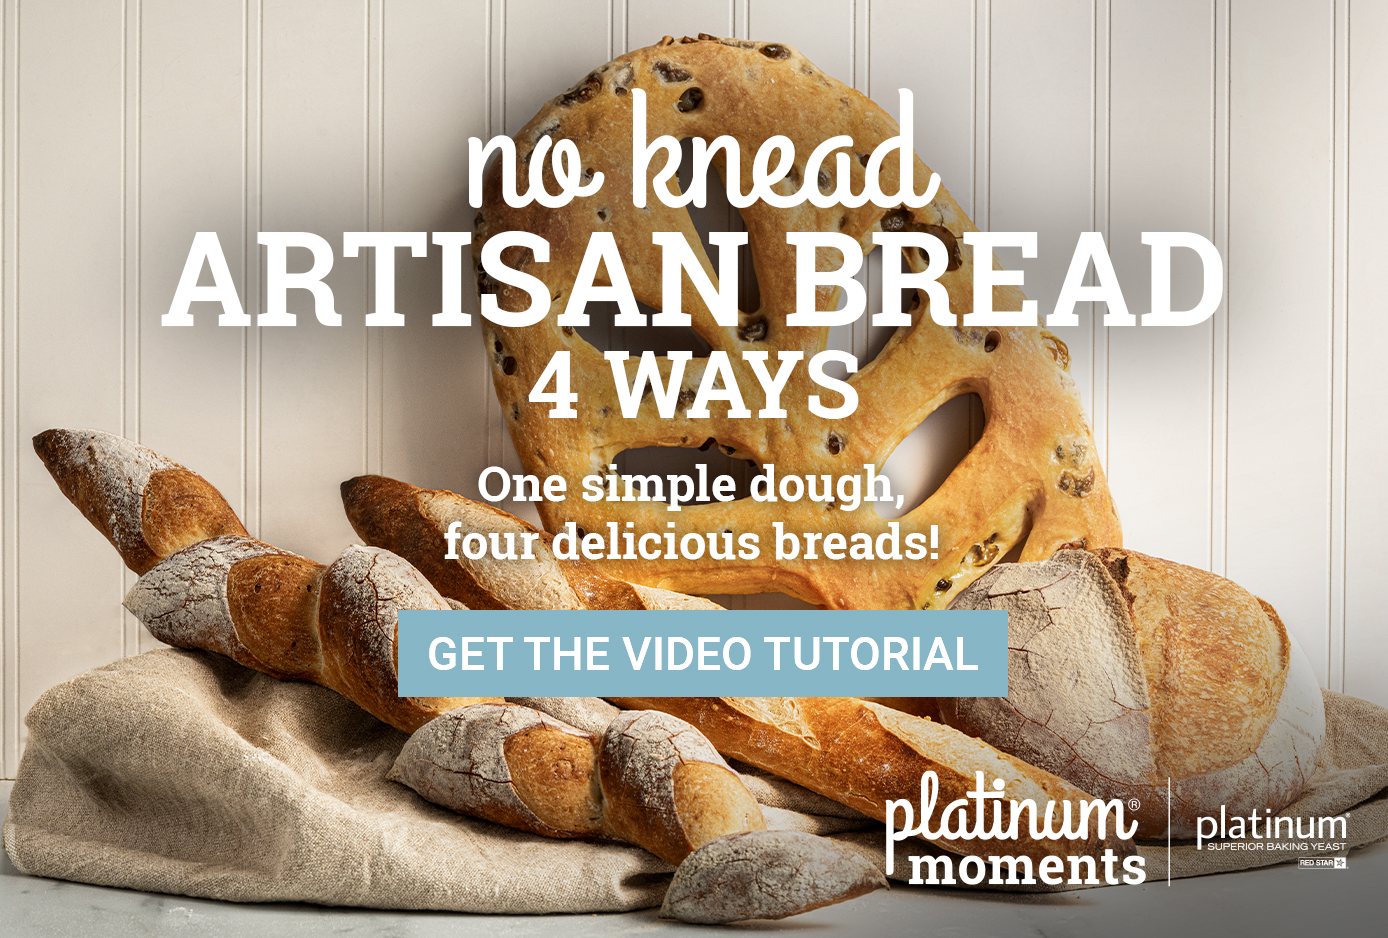 No Knead Artisan Bread 4 Ways Recipe